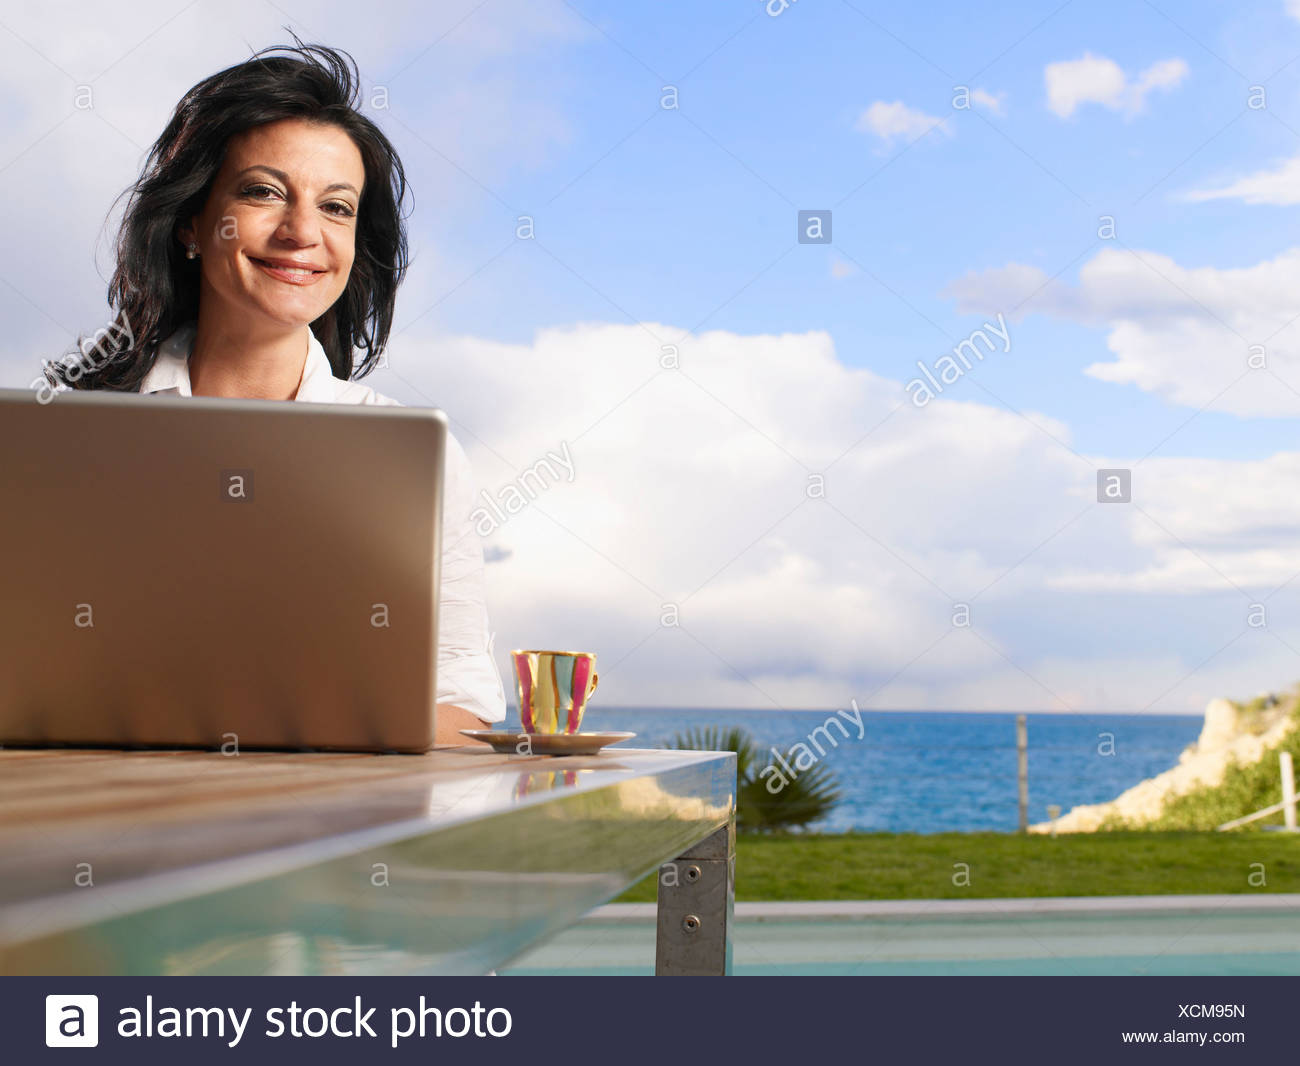 Woman on laptop out doors on decking - Stock Image